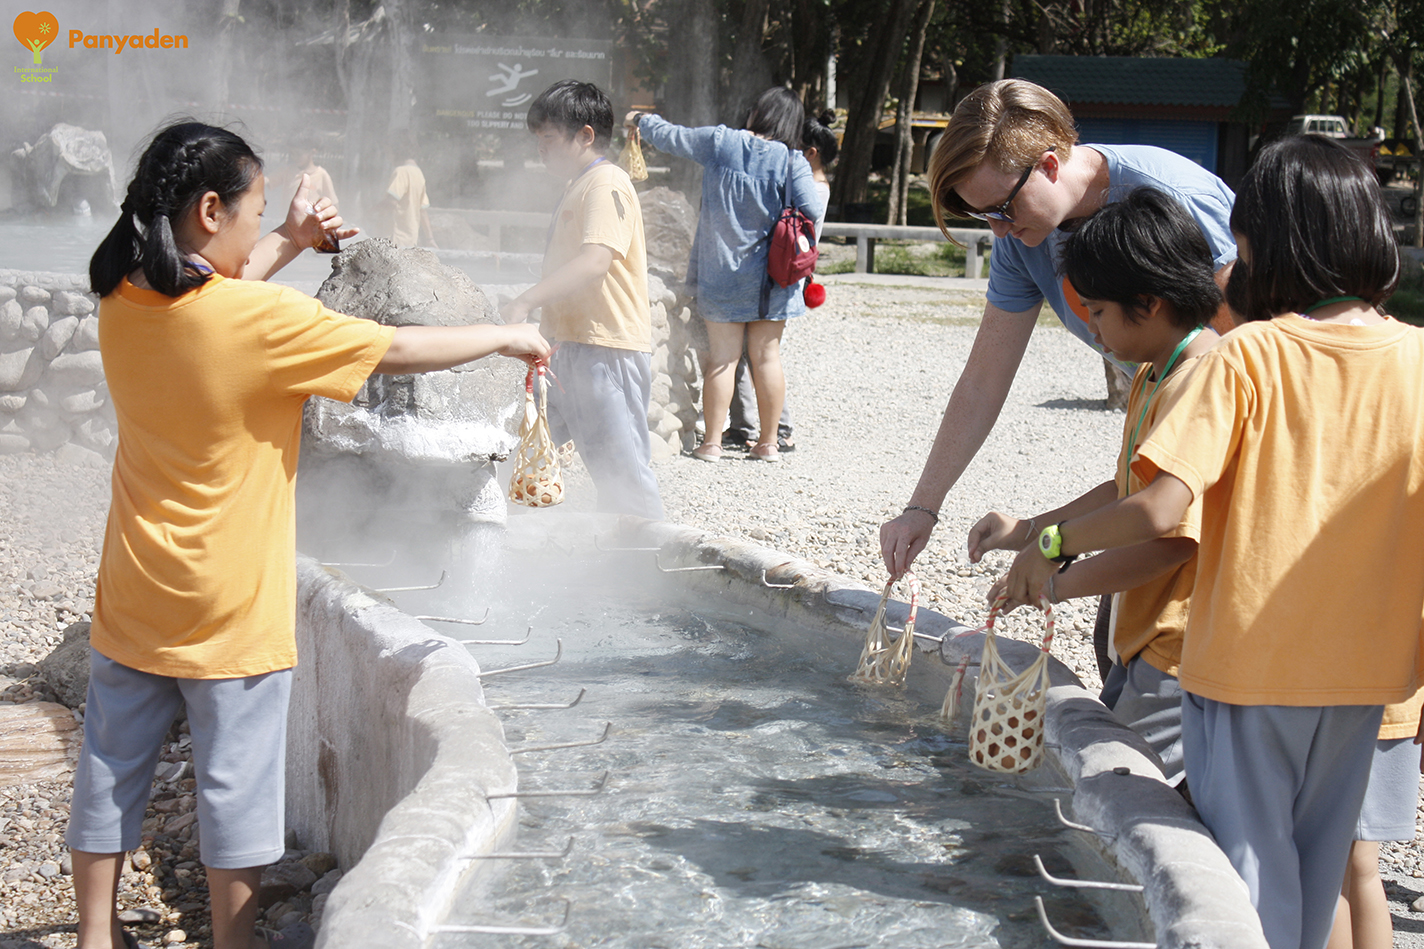 Boiling eggs in the hot springs - Panyaden Year 4 field trip